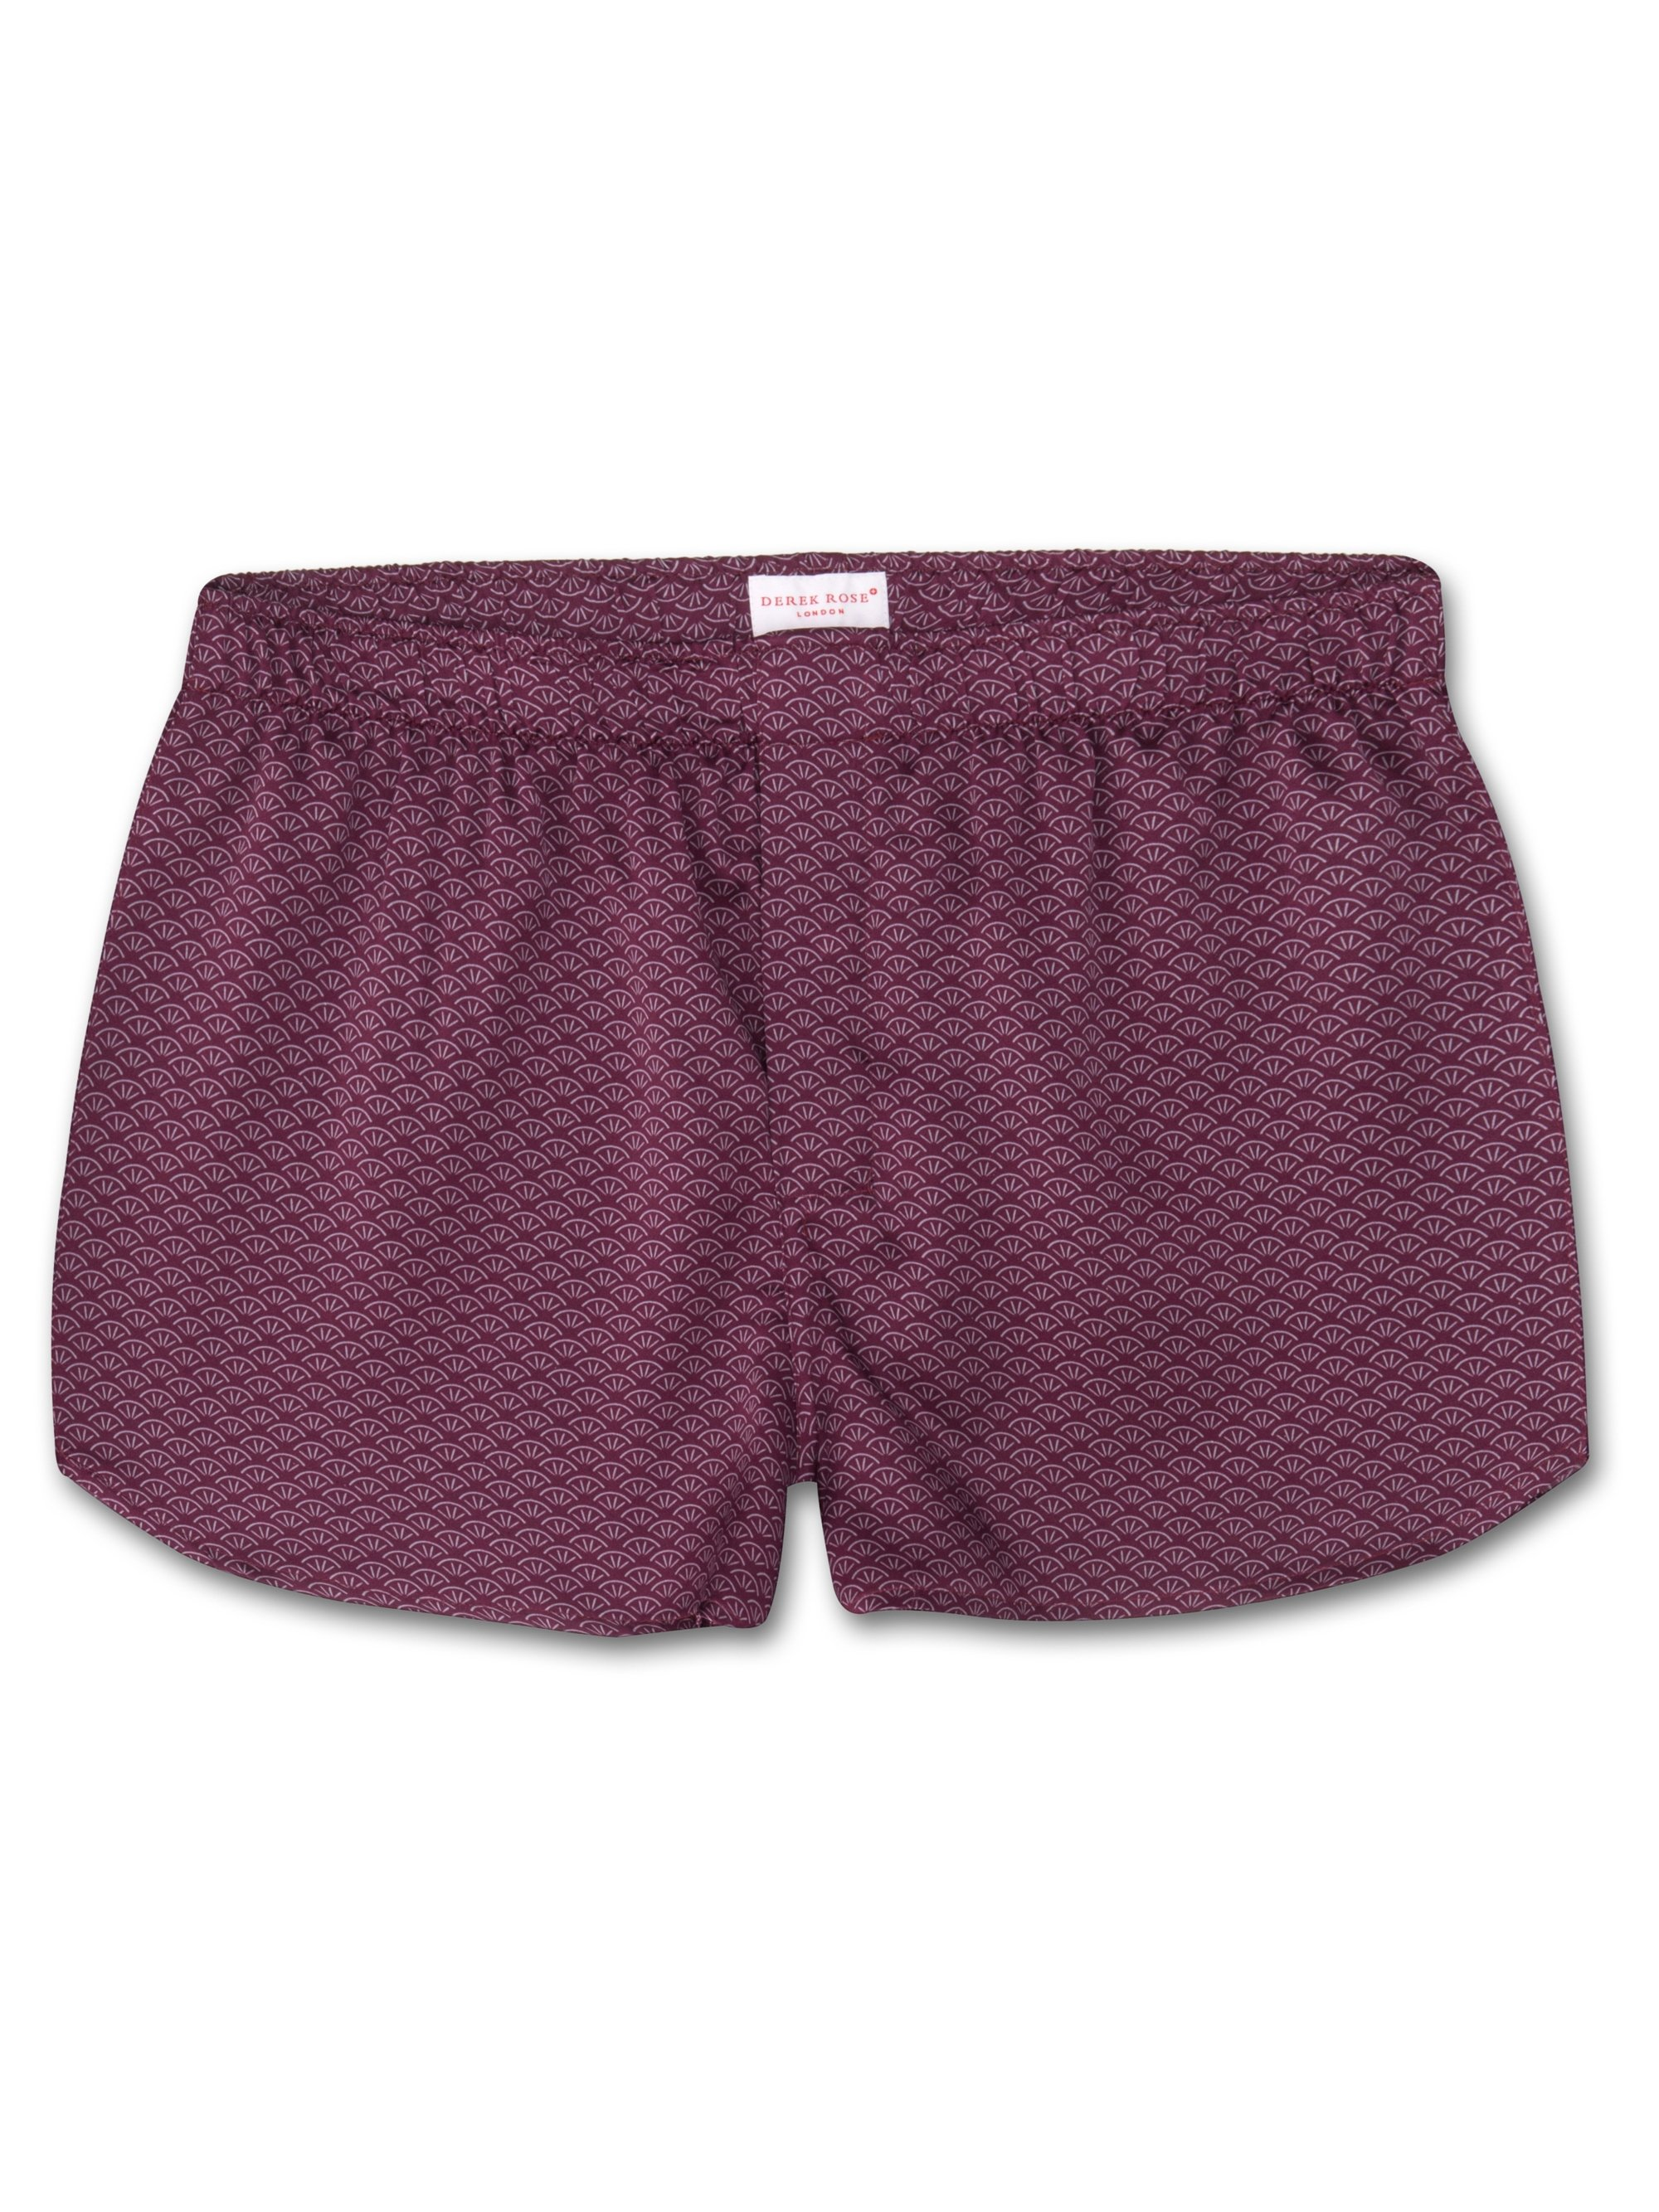 Men's Modern Fit Boxer Shorts Brindisi 26 Pure Silk Satin Burgundy